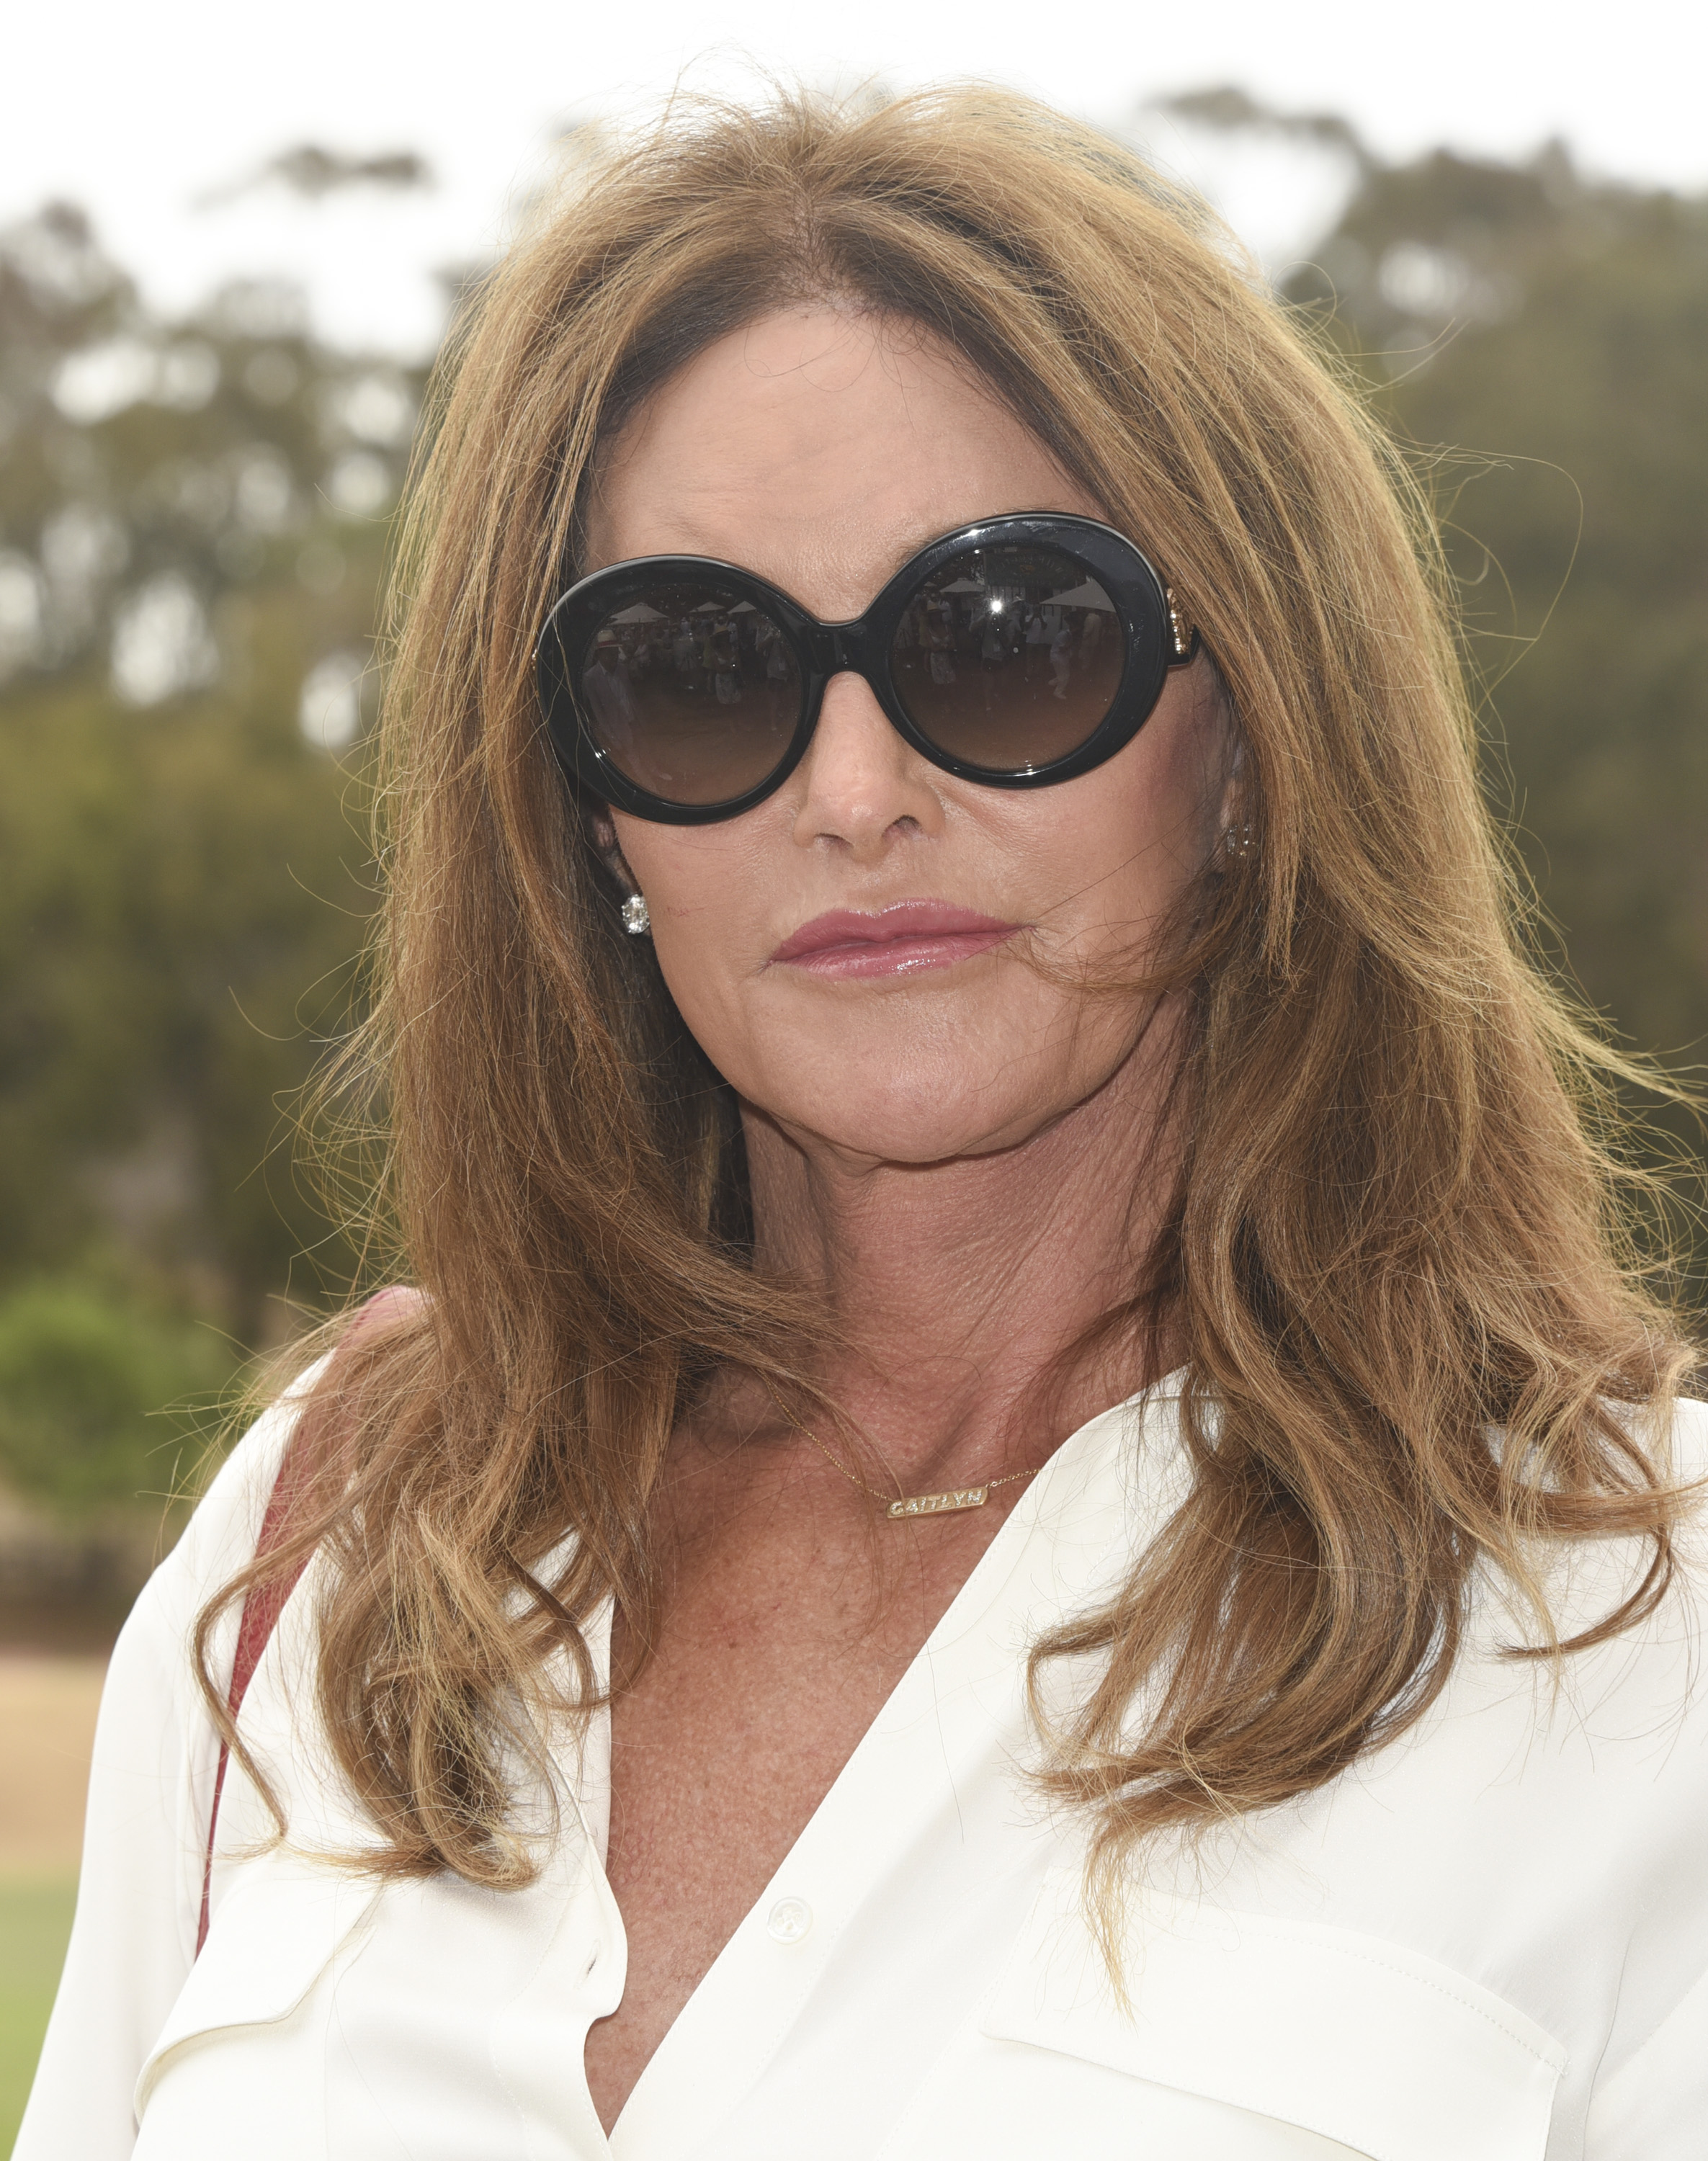 Caitlyn Jenner in Pacific Palisades, Calif., Sept. 12, 2015.